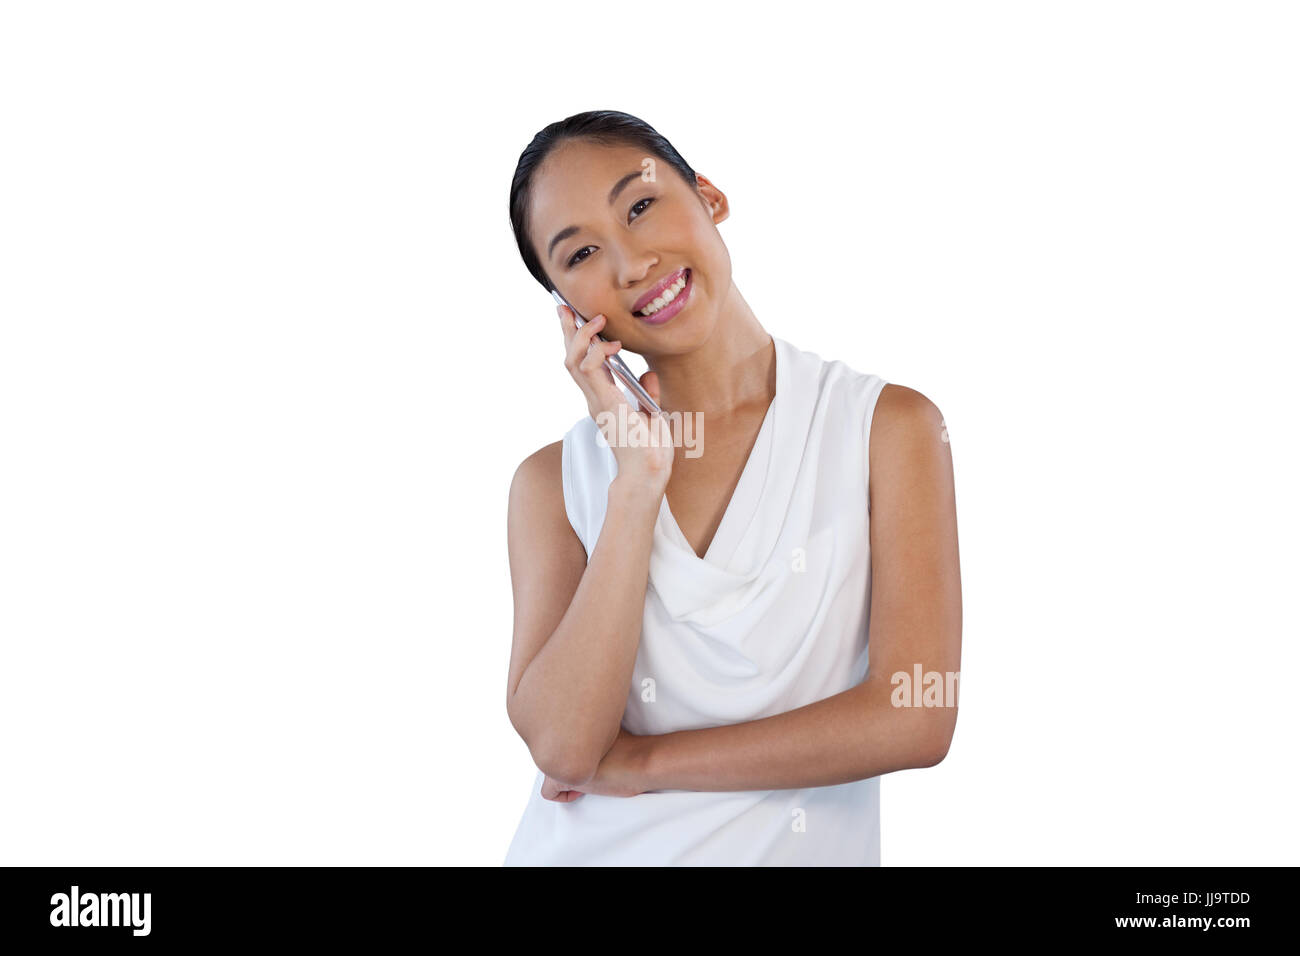 Happy businesswoman with head cocked talking on mobile phone while standing against white background - Stock Image